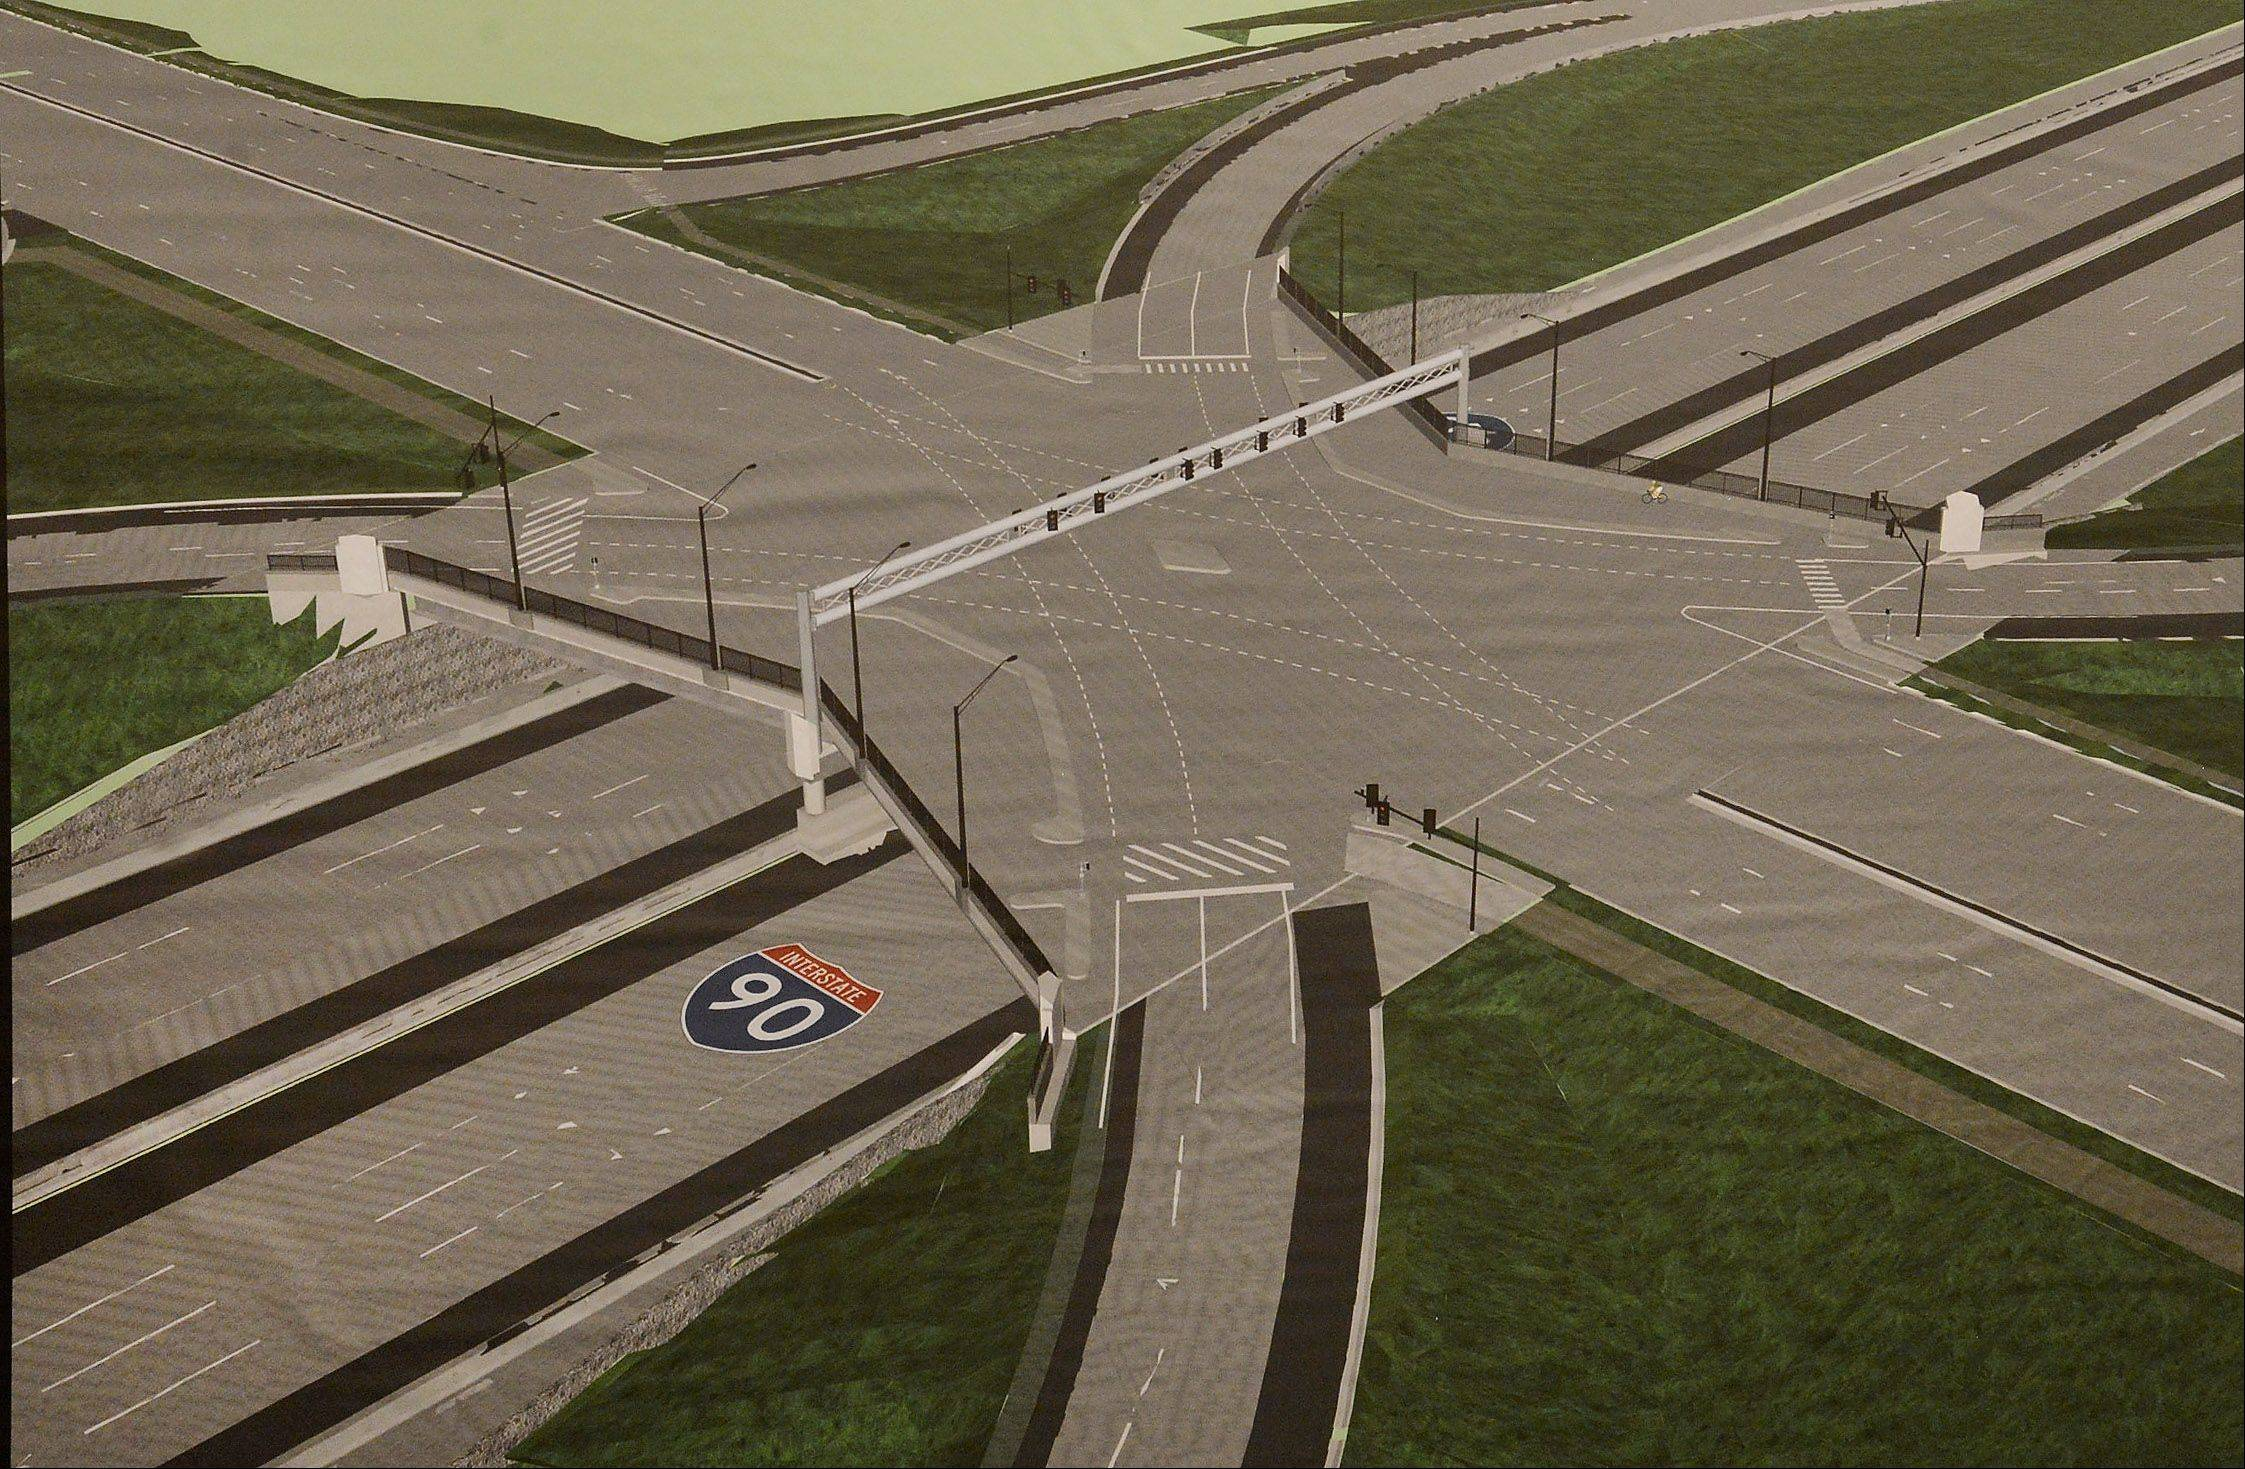 This is a sketch of the $68 million project to build a full tollway interchange at Barrington Road and the Jane Addams Memorial Tollway in Hoffman Estates.